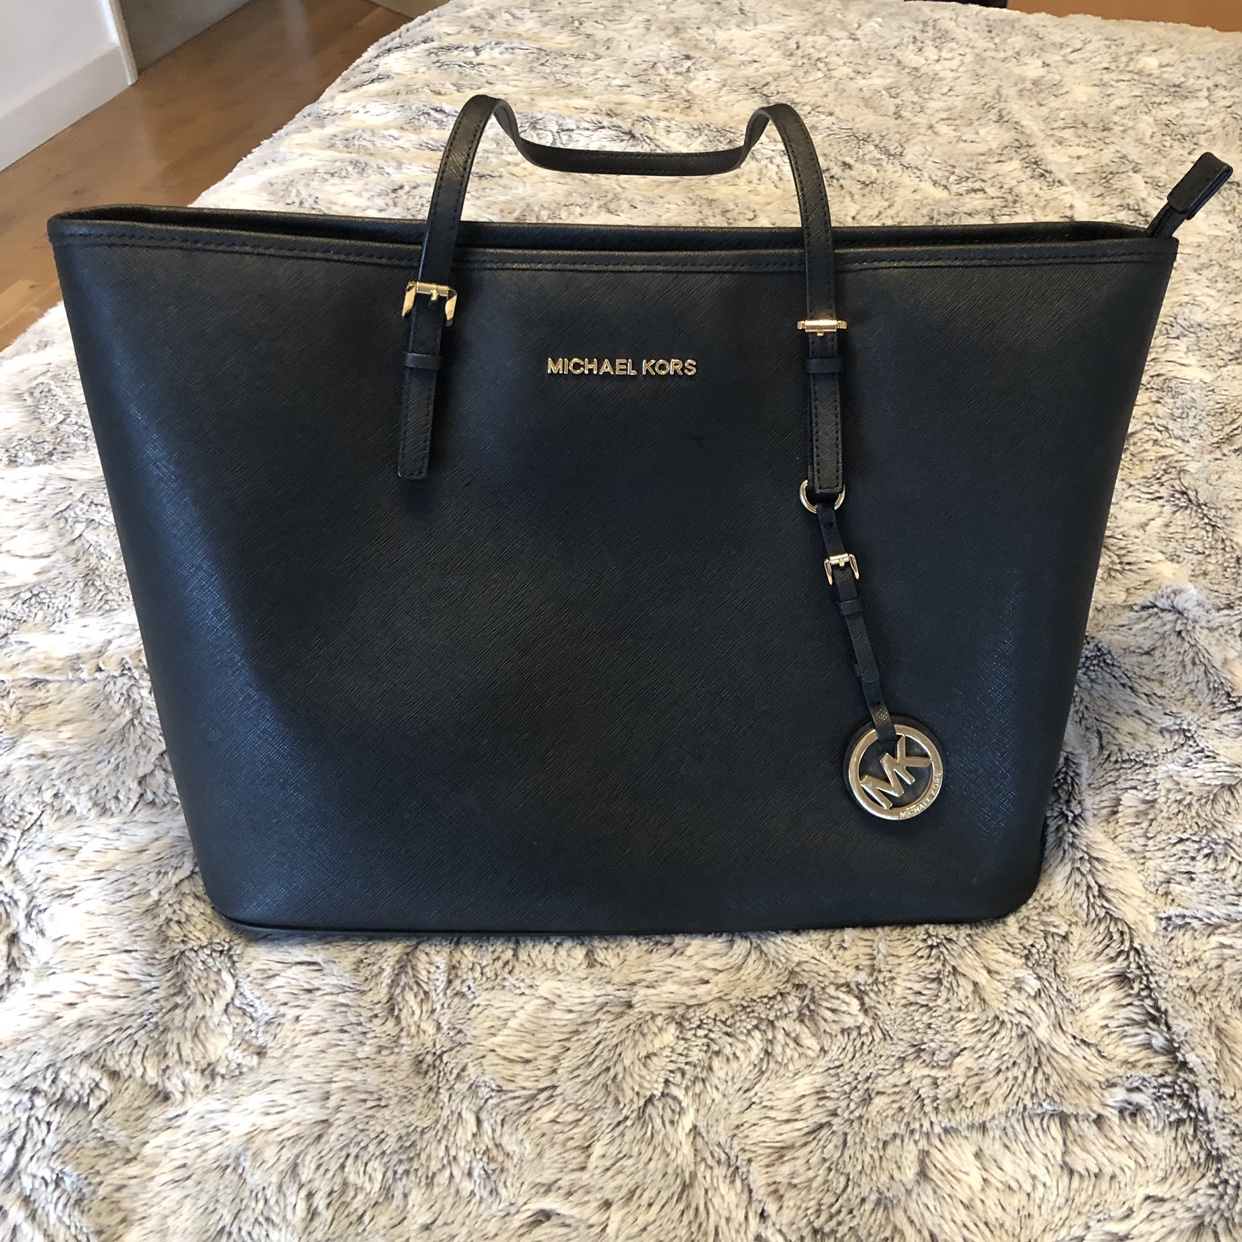 Michael Kors black tote bag second hand 44x26cm Depop